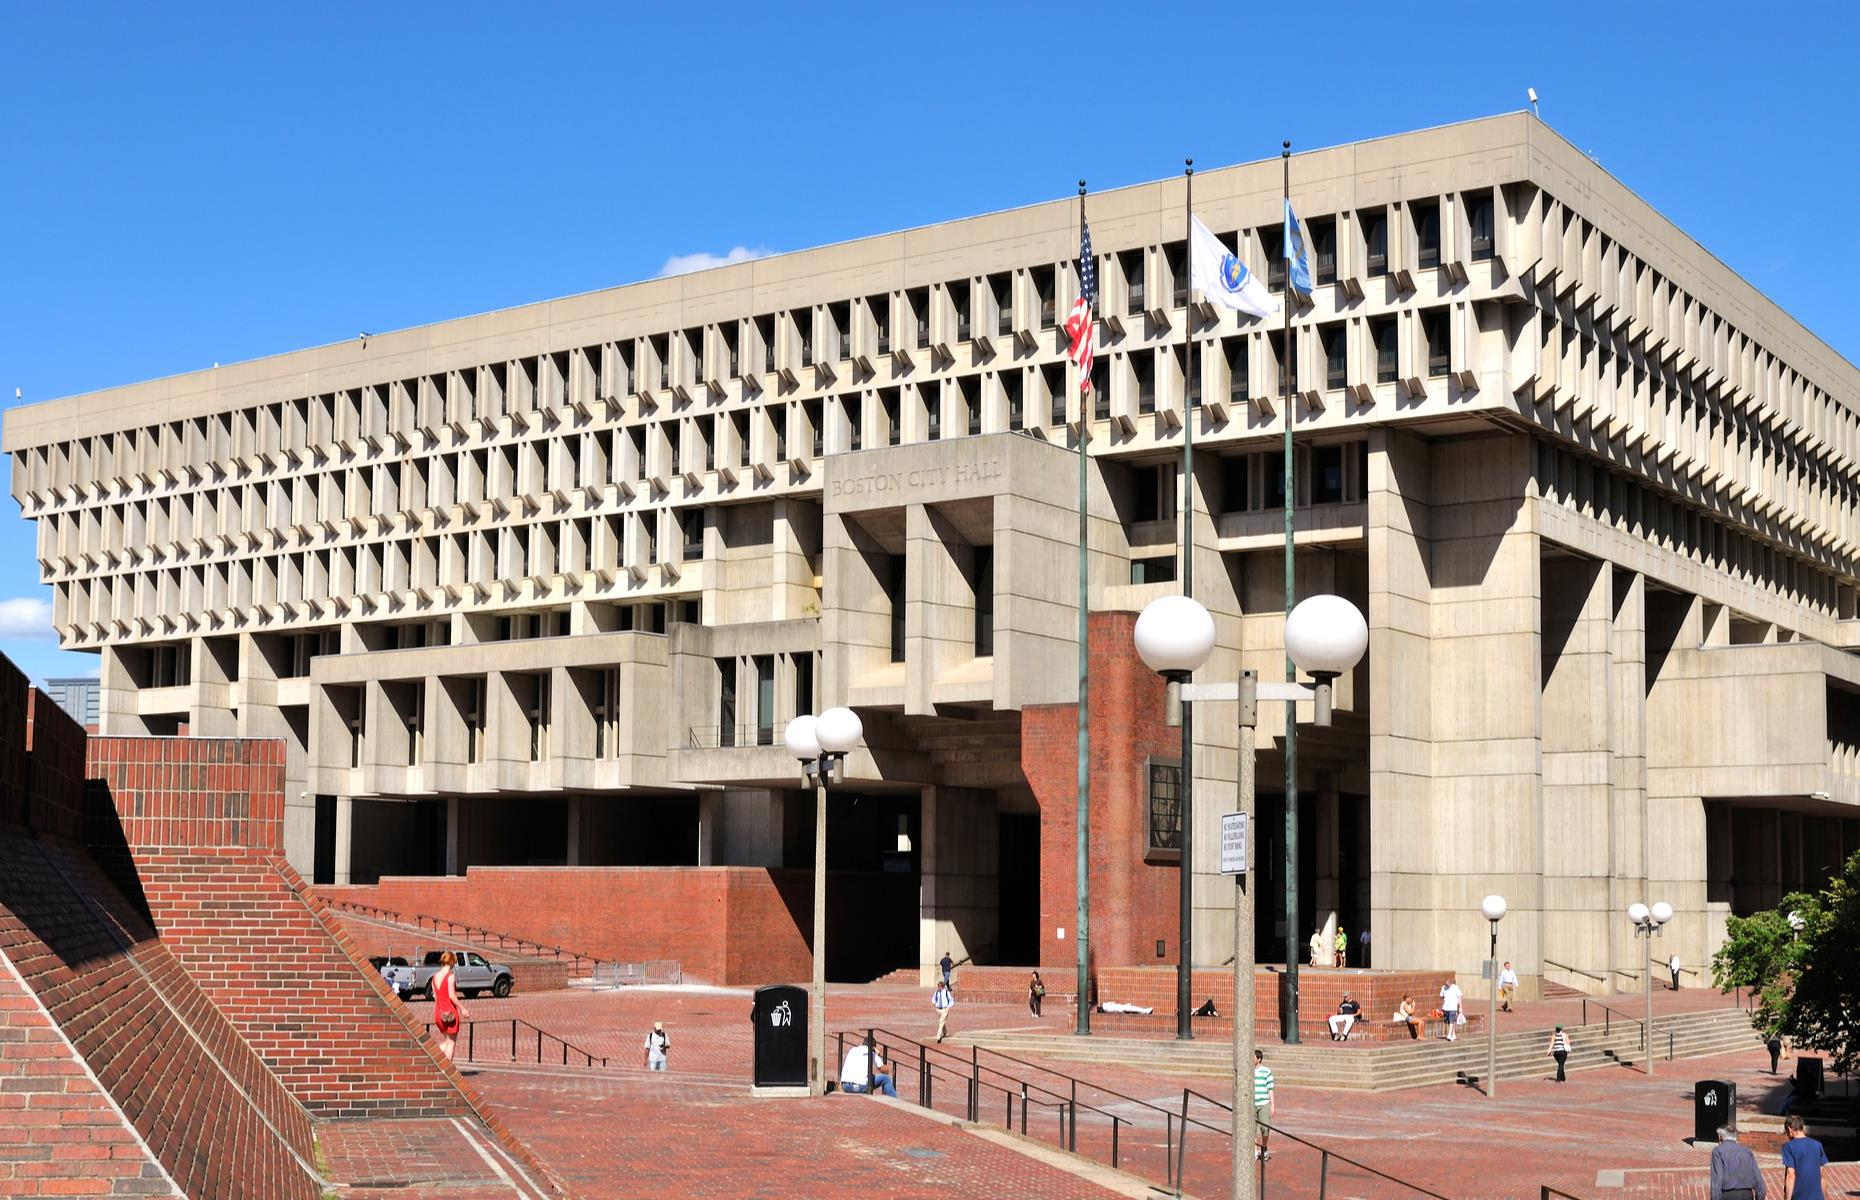 Slide 26 of 31: Boston's Brutalist City Hall is one for architecture lovers, with its vast plaza usually playing host to cultural festivals, wandering tourists and lunching locals. But even Boston residents might not know what lies beneath this public space. The plaza was built upon an abandoned subway tunnel generally off-limits to the public – around two years ago, though, 100 tickets to explore this subterranean slice of Boston's past were released, and access was granted on a first-come-first-served basis. For the rest of us, it remains a mystery.